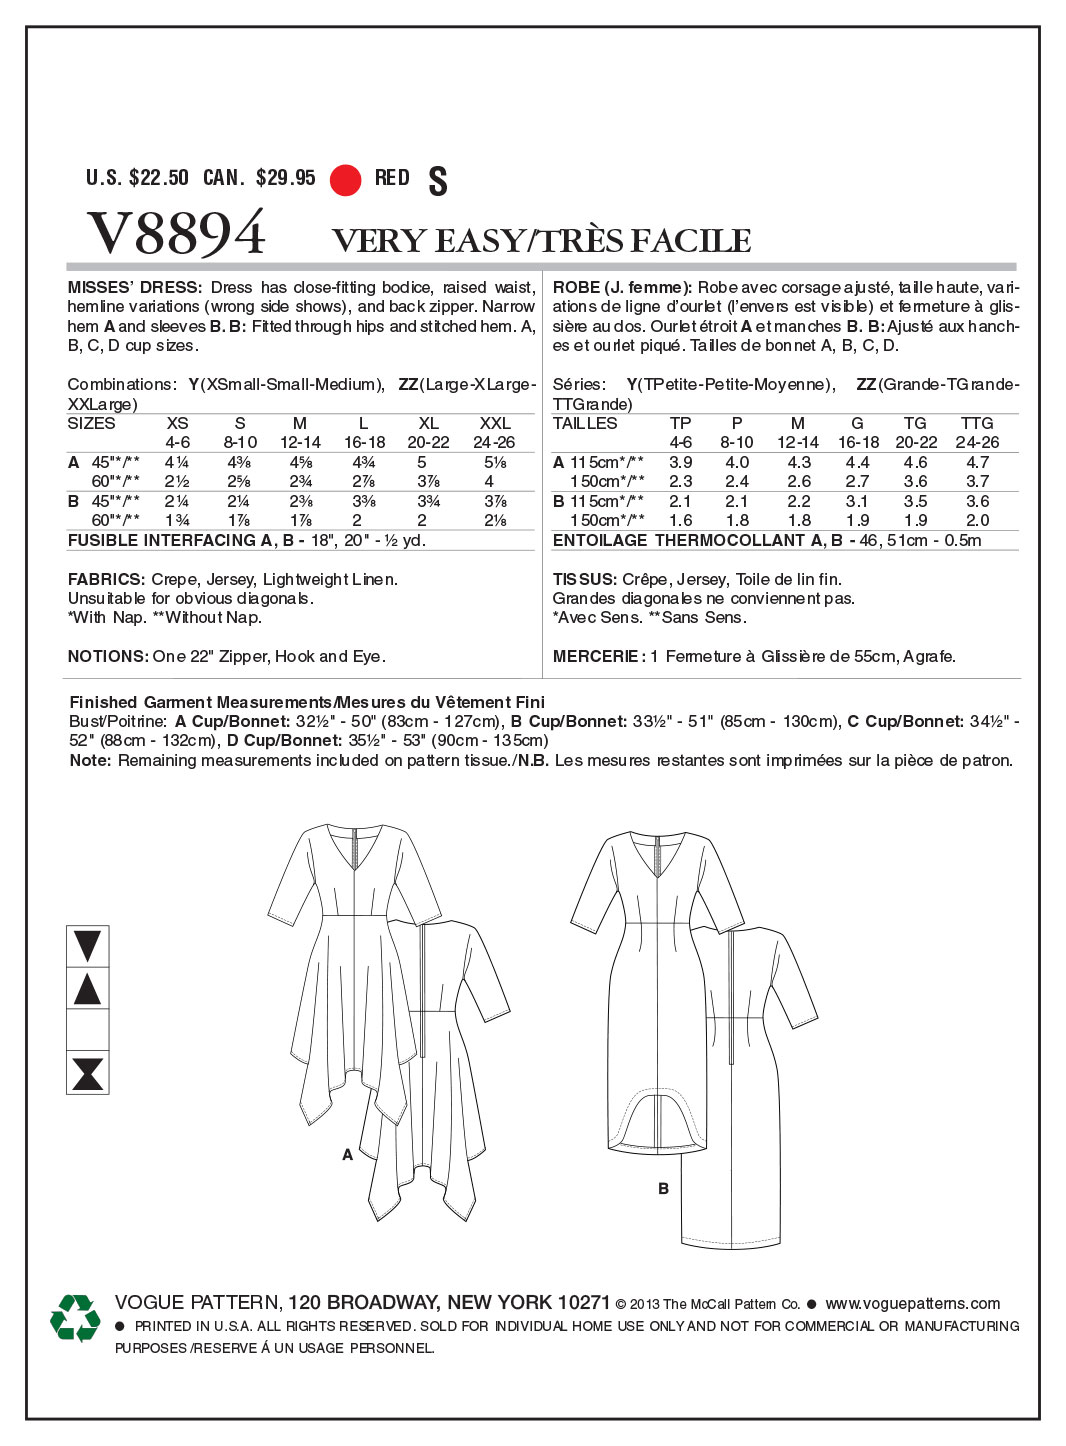 Vogue Patterns Misses Dress-V8894